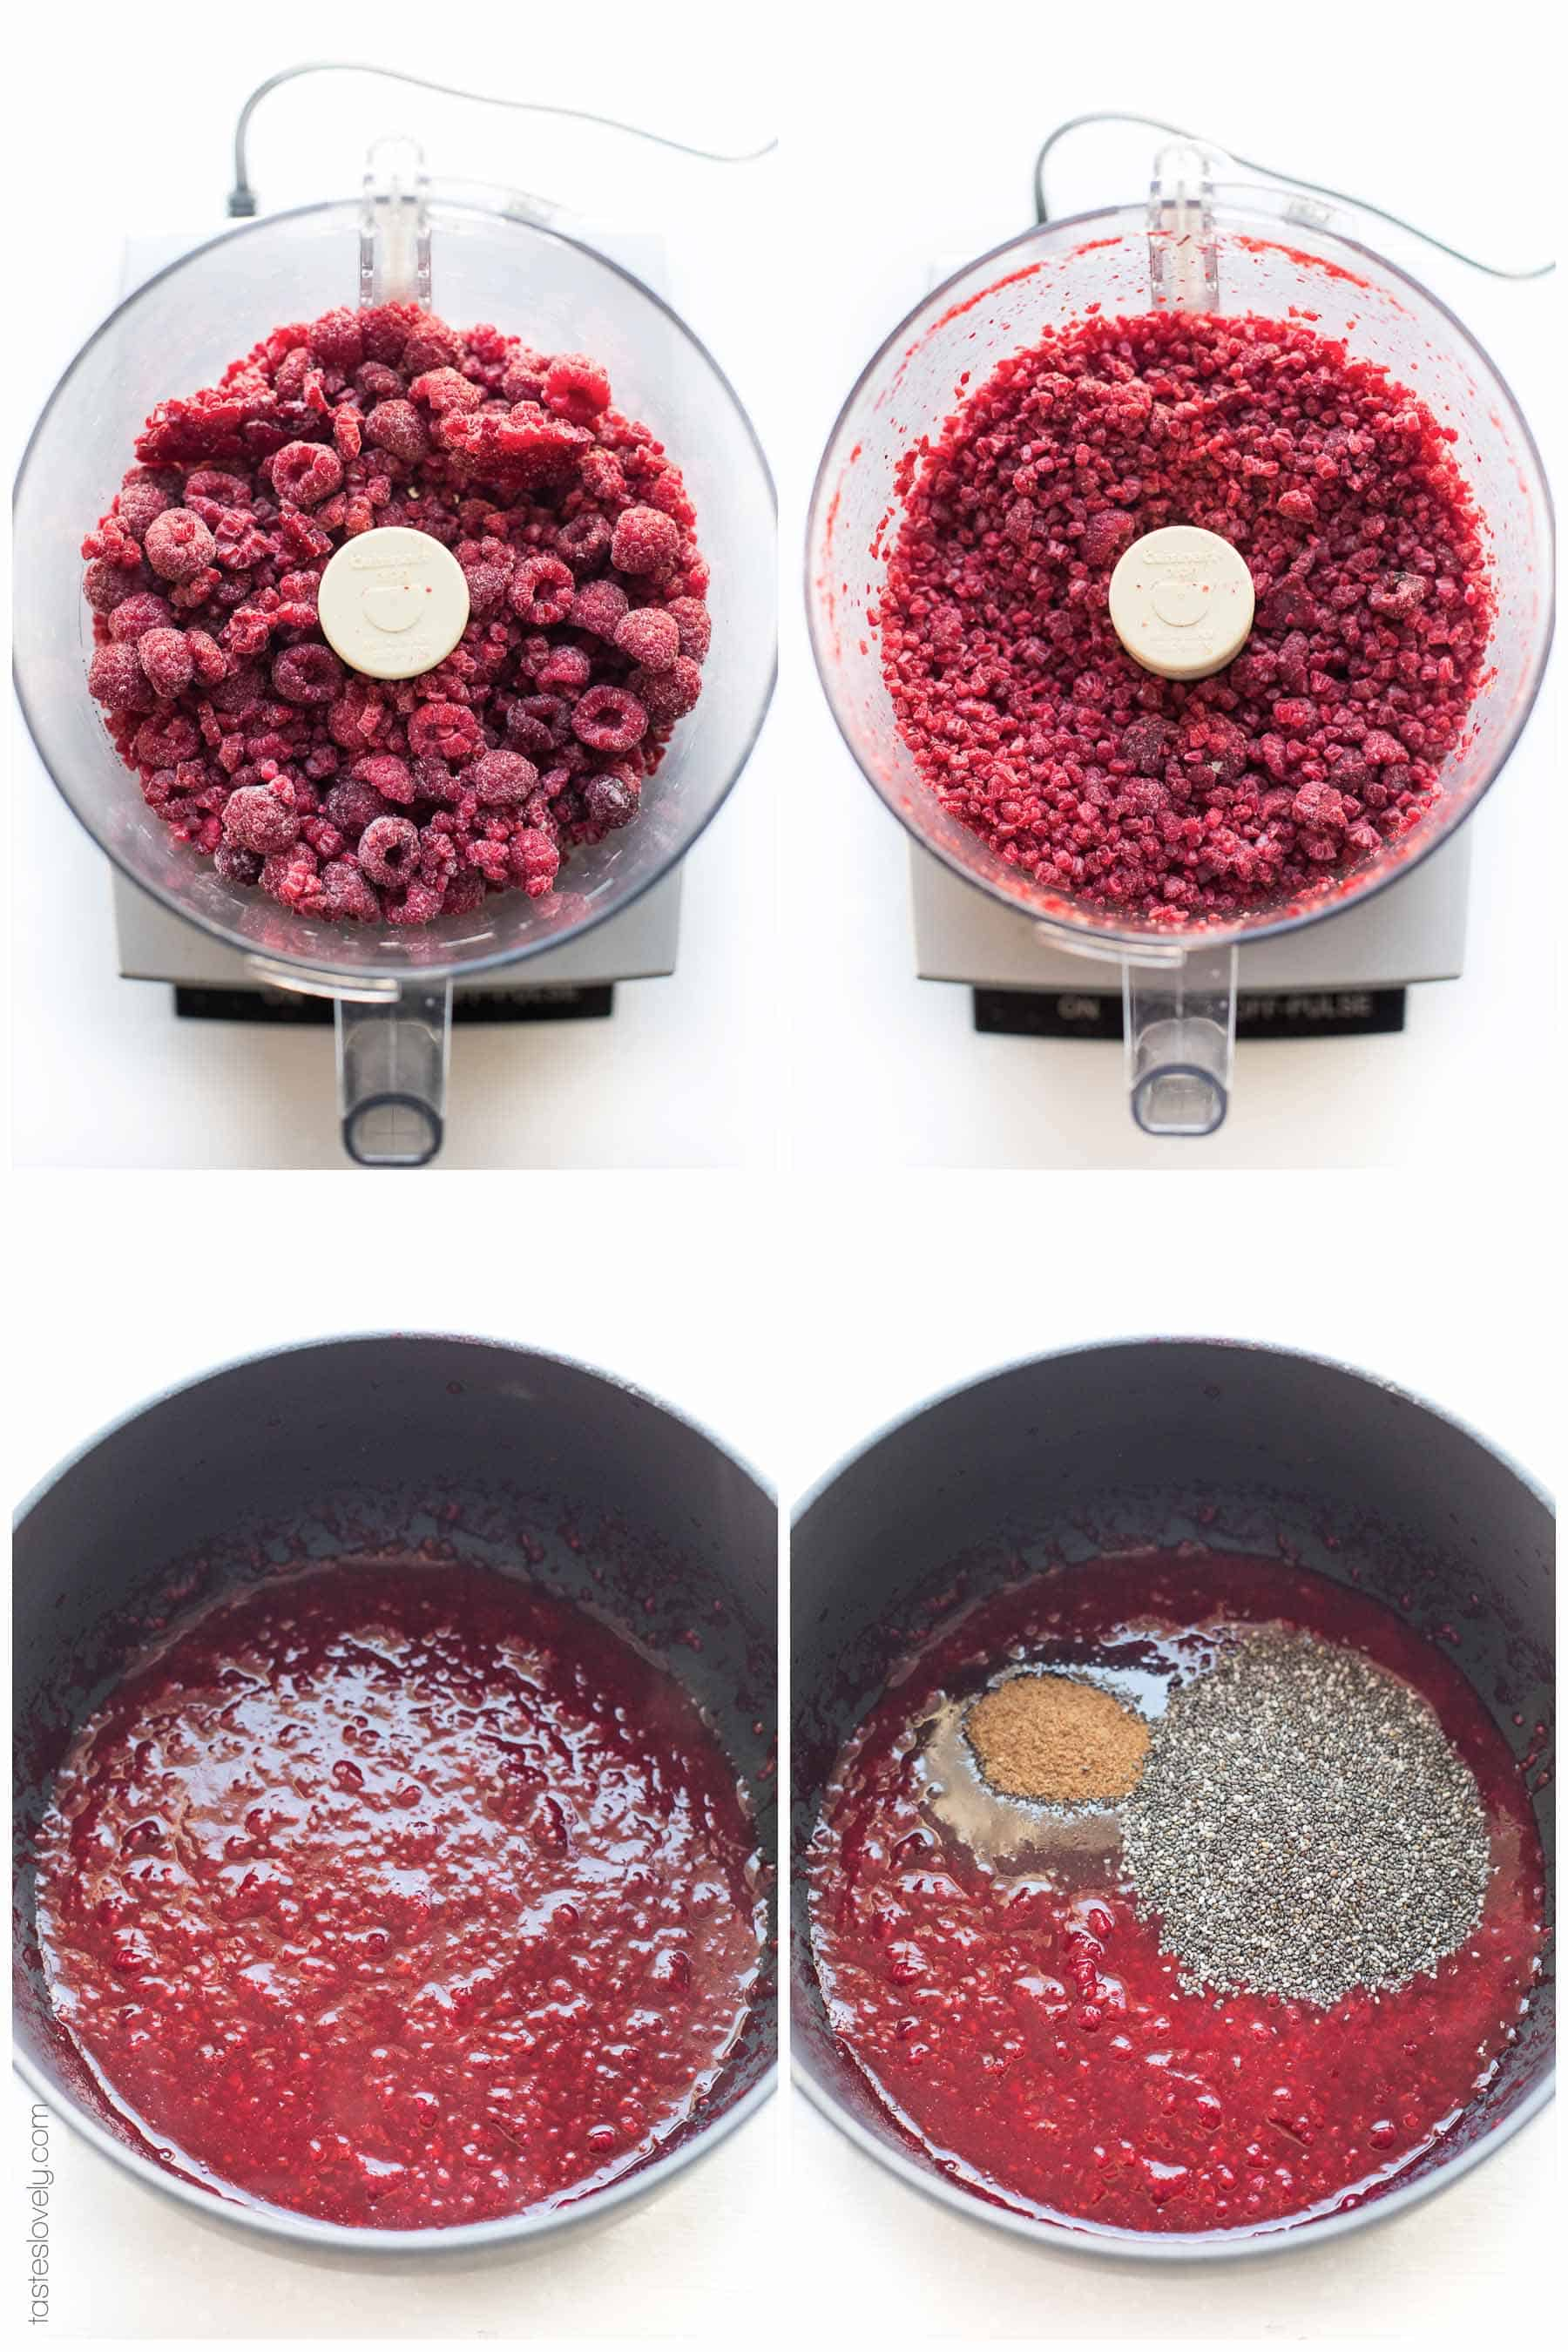 Paleo Chia Seed Jam with Frozen Berries - use any frozen berry! Sweetened with coconut sugar and freezer friendly.